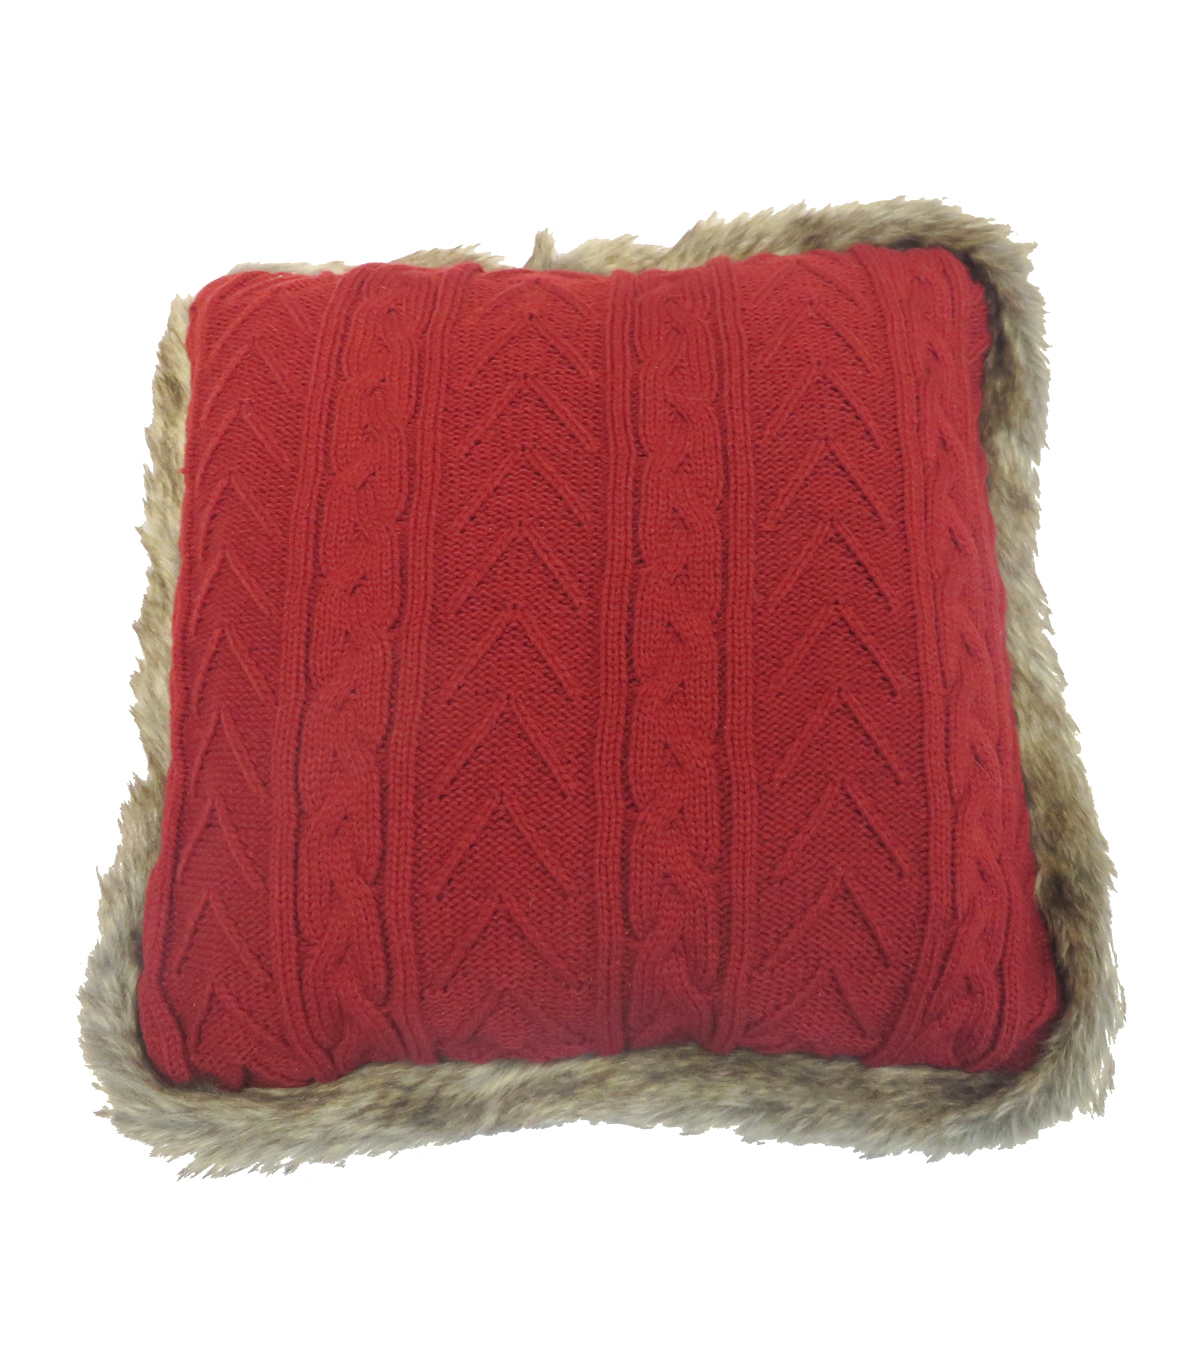 Maker\u0027s Holiday Christmas Knitting with Fur Piping Pillow